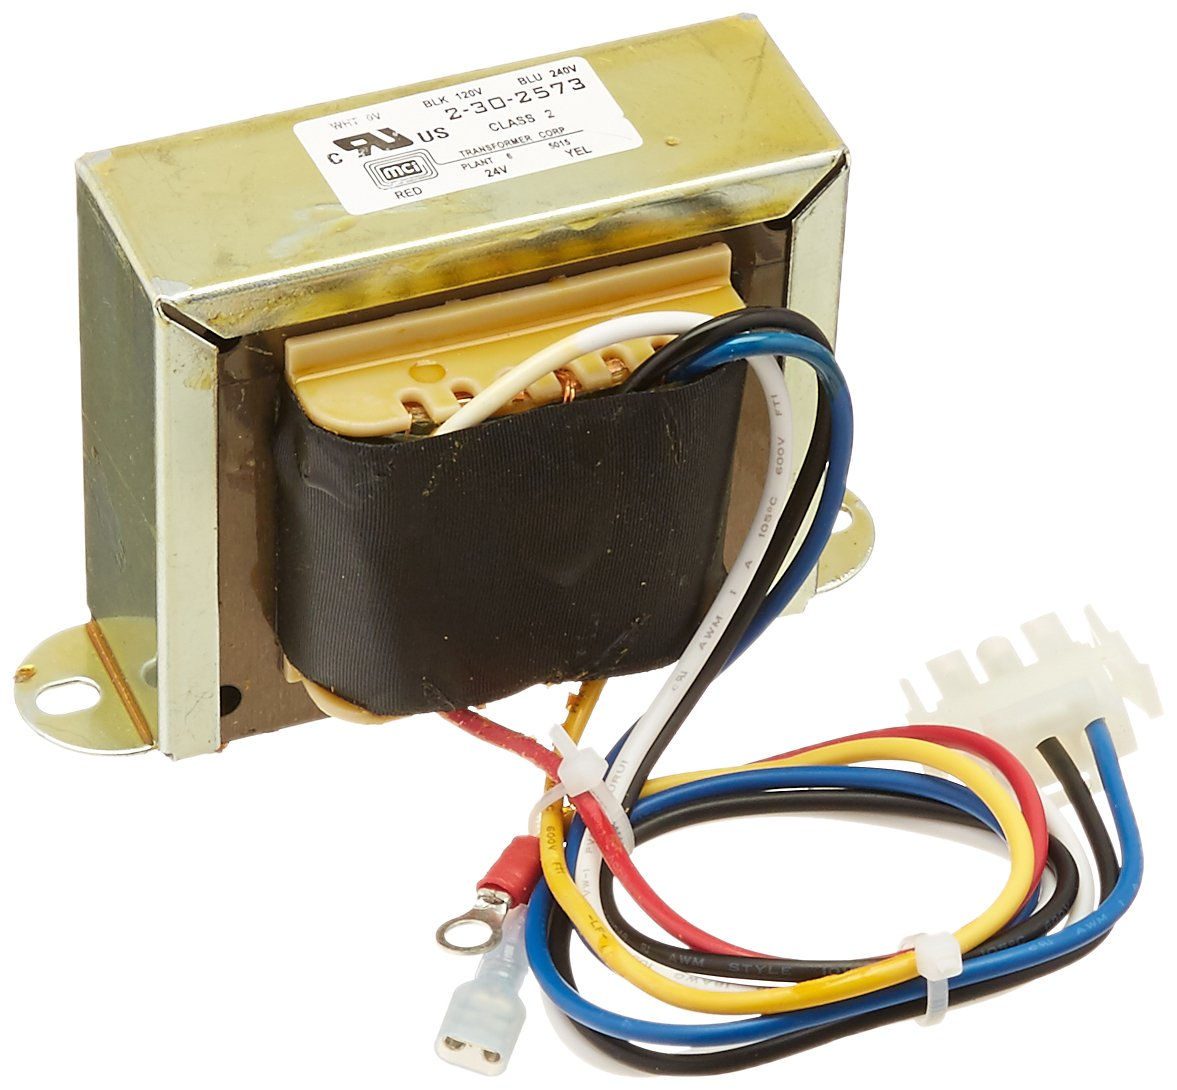 Zodiac R0456300 Transformer Replacement for Zodiac Jandy LXi Low NOx Pool and Spa Heaters by Zodiac